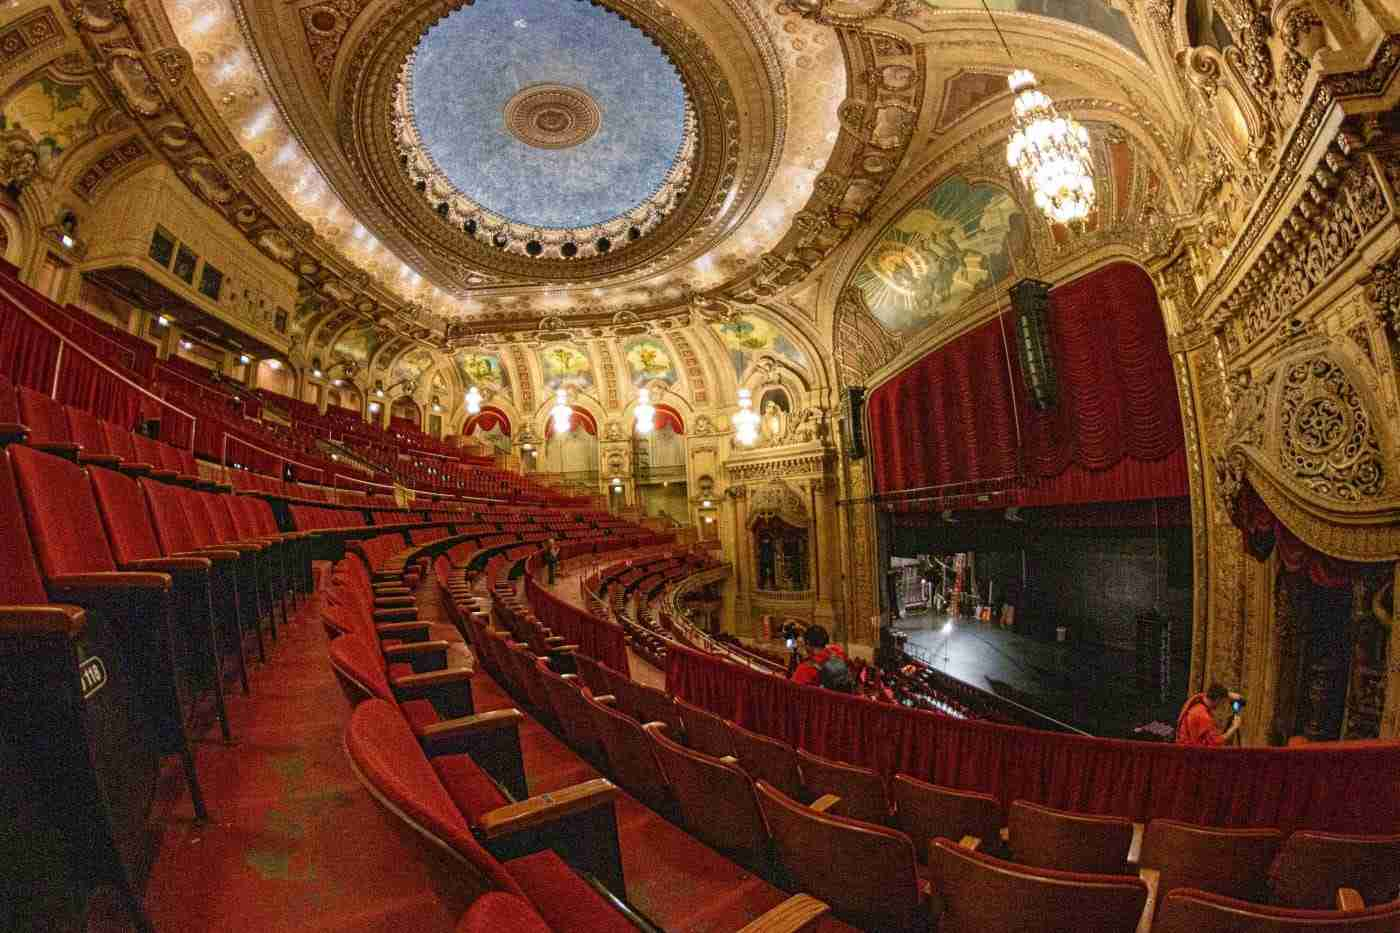 A View inside the Chicago Theater